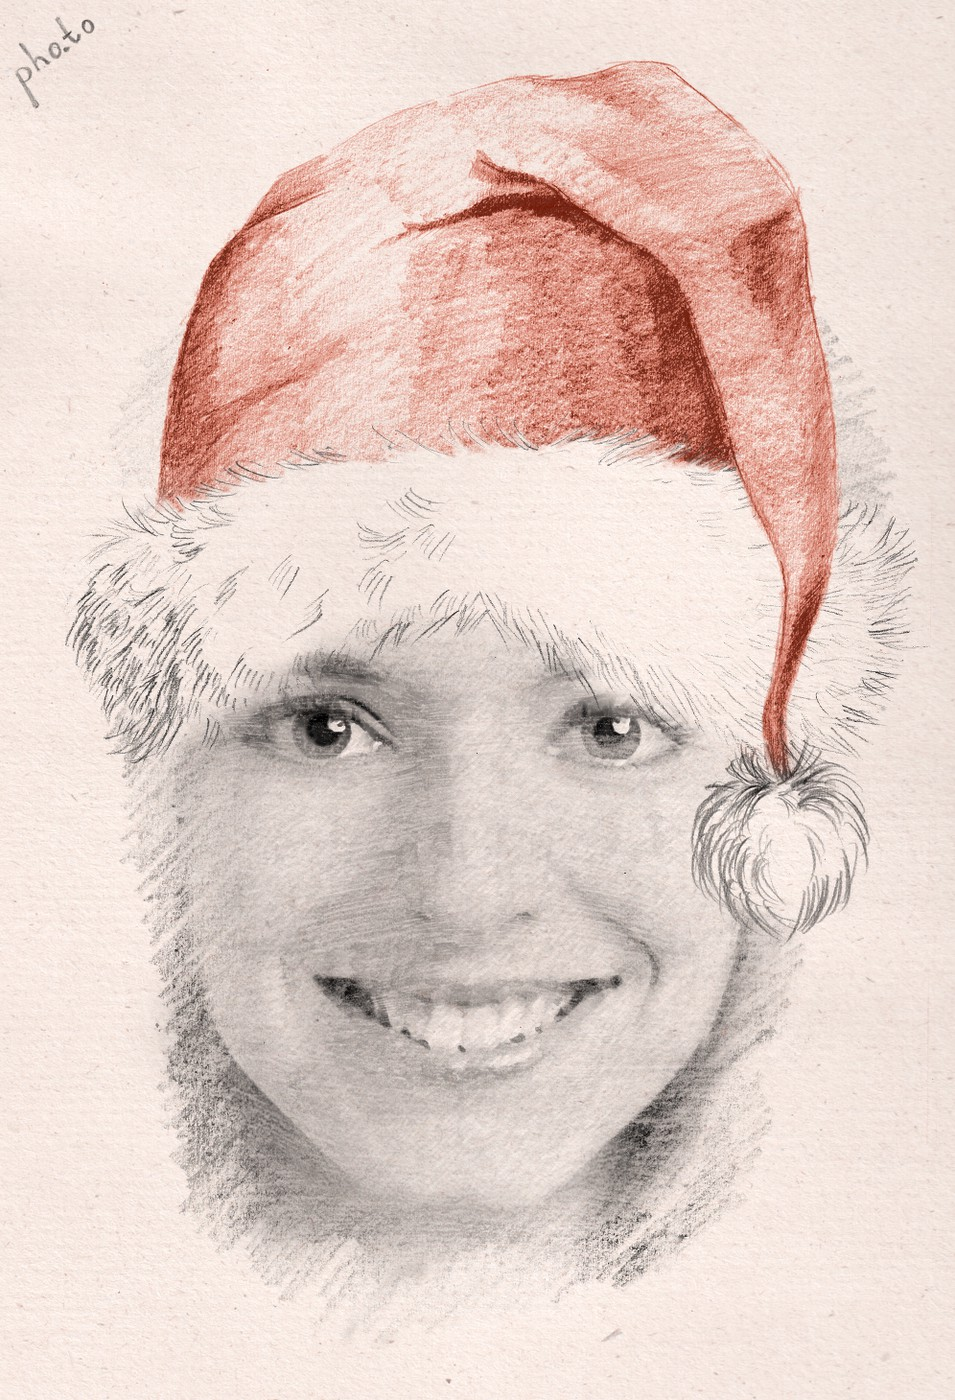 Funny Christmas sketch of a girl wearing red Santa hat.